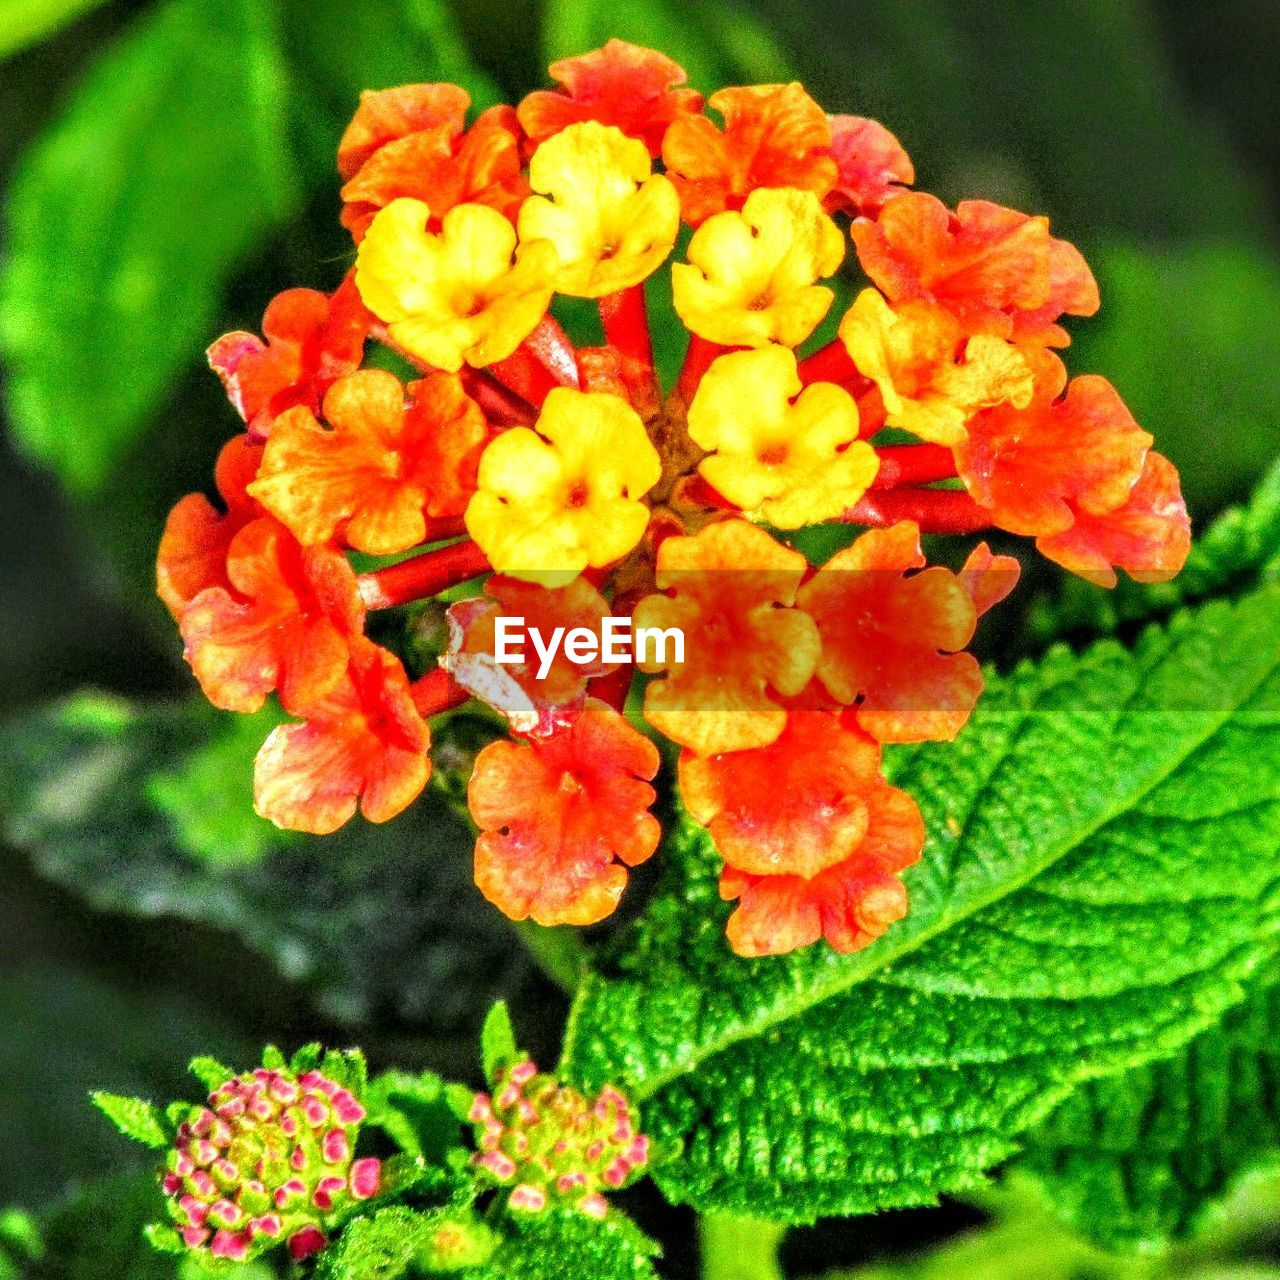 flower, beauty in nature, nature, growth, freshness, fragility, plant, outdoors, no people, close-up, petal, day, leaf, focus on foreground, lantana camara, flower head, blooming